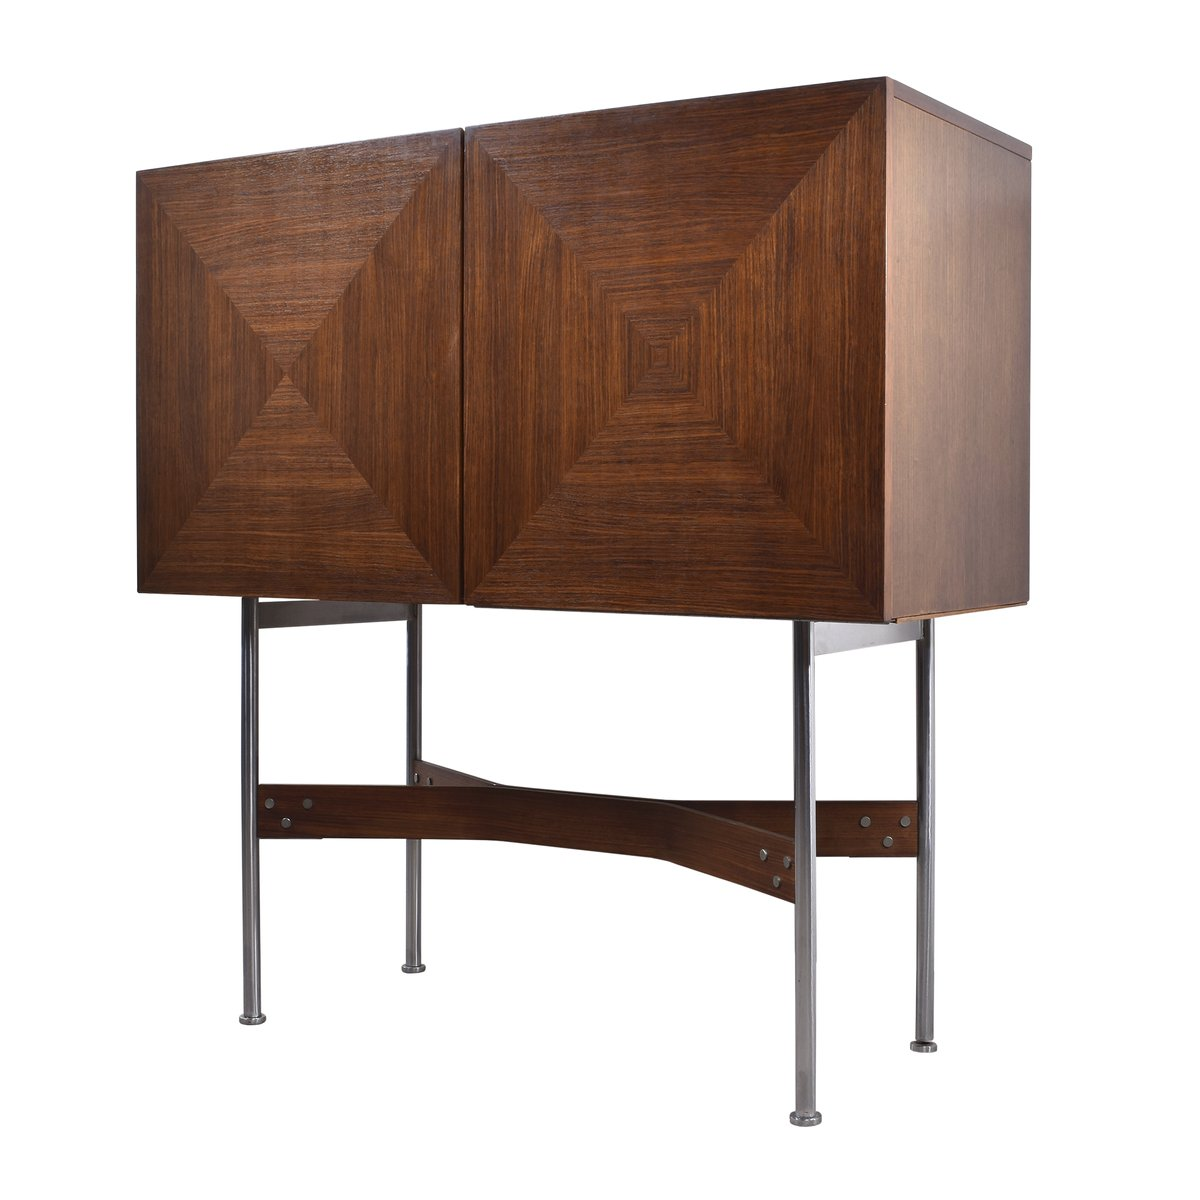 great meuble de bar vintage par rudolf bernd glatzel pour fristho paysbas en vente sur pamono. Black Bedroom Furniture Sets. Home Design Ideas